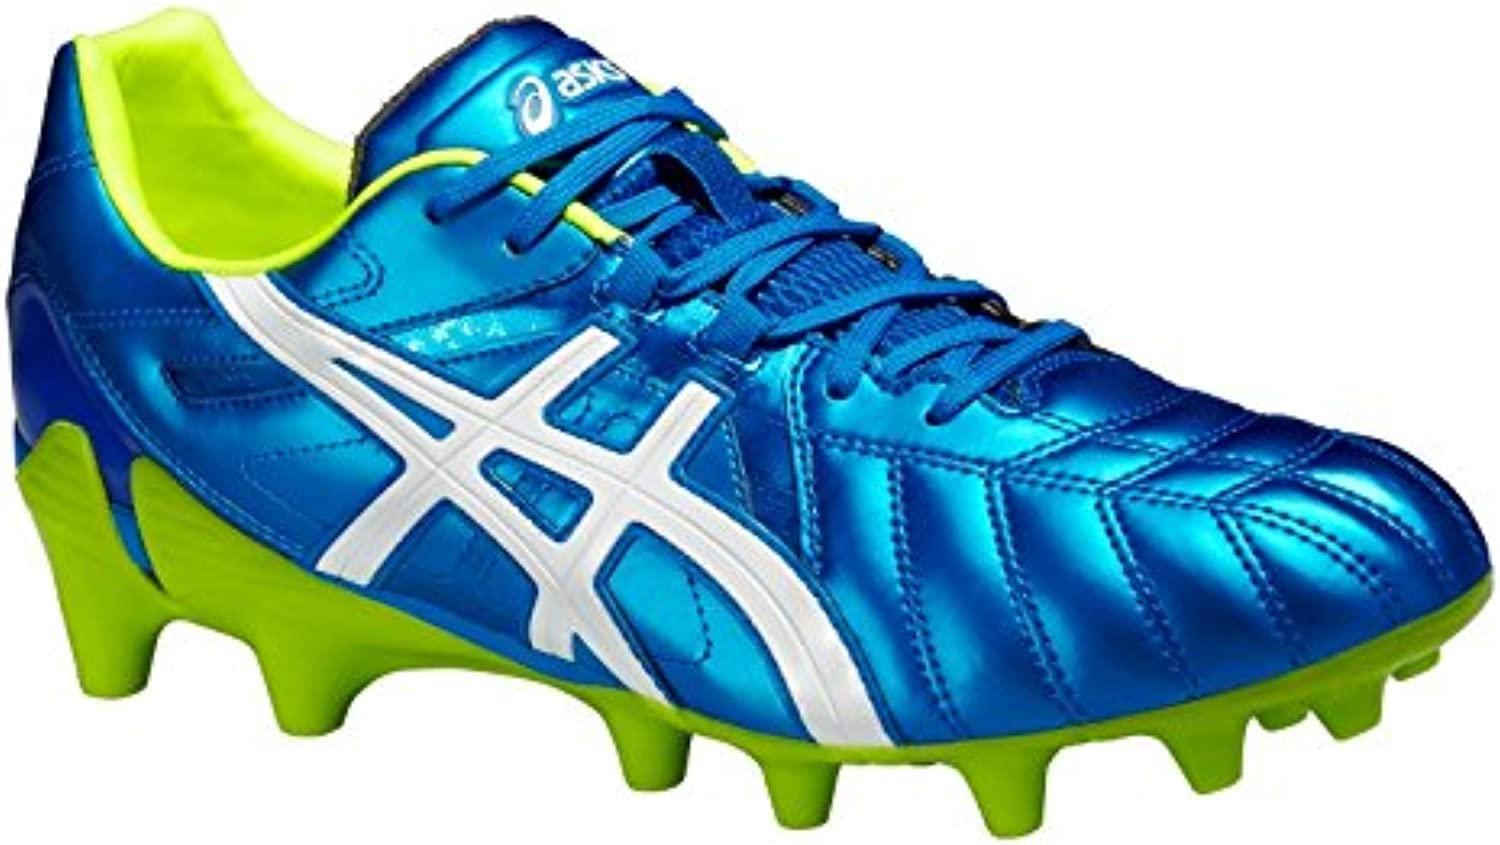 Asics Gel-Lethal Tigreor 8 SK Rugby Boots - Electric Blue